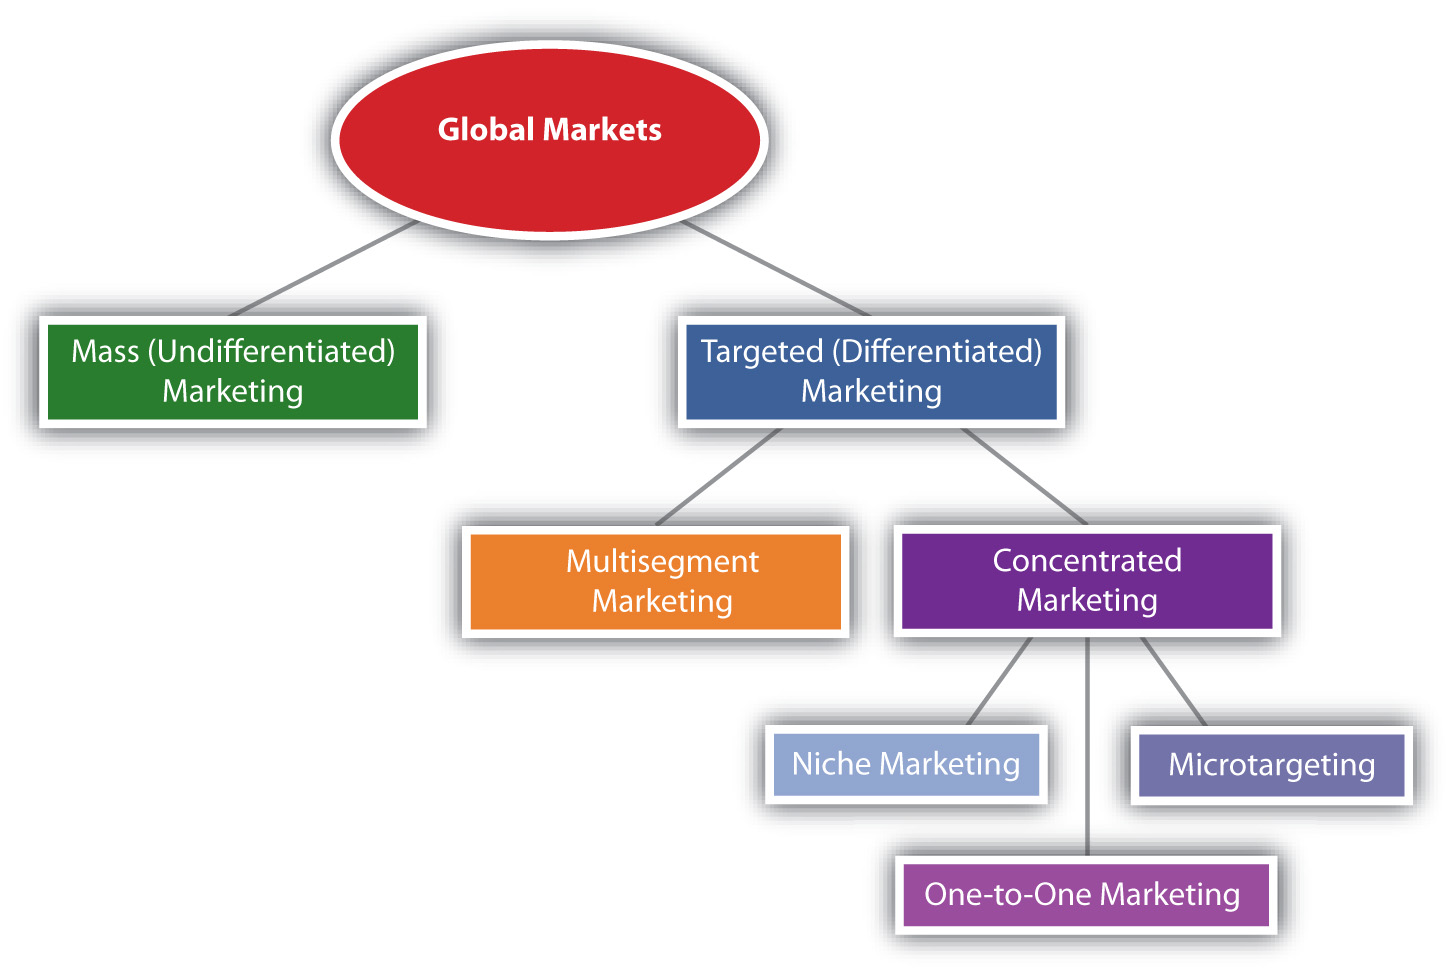 Figure 59 Targeting Strategies Used In Global Markets